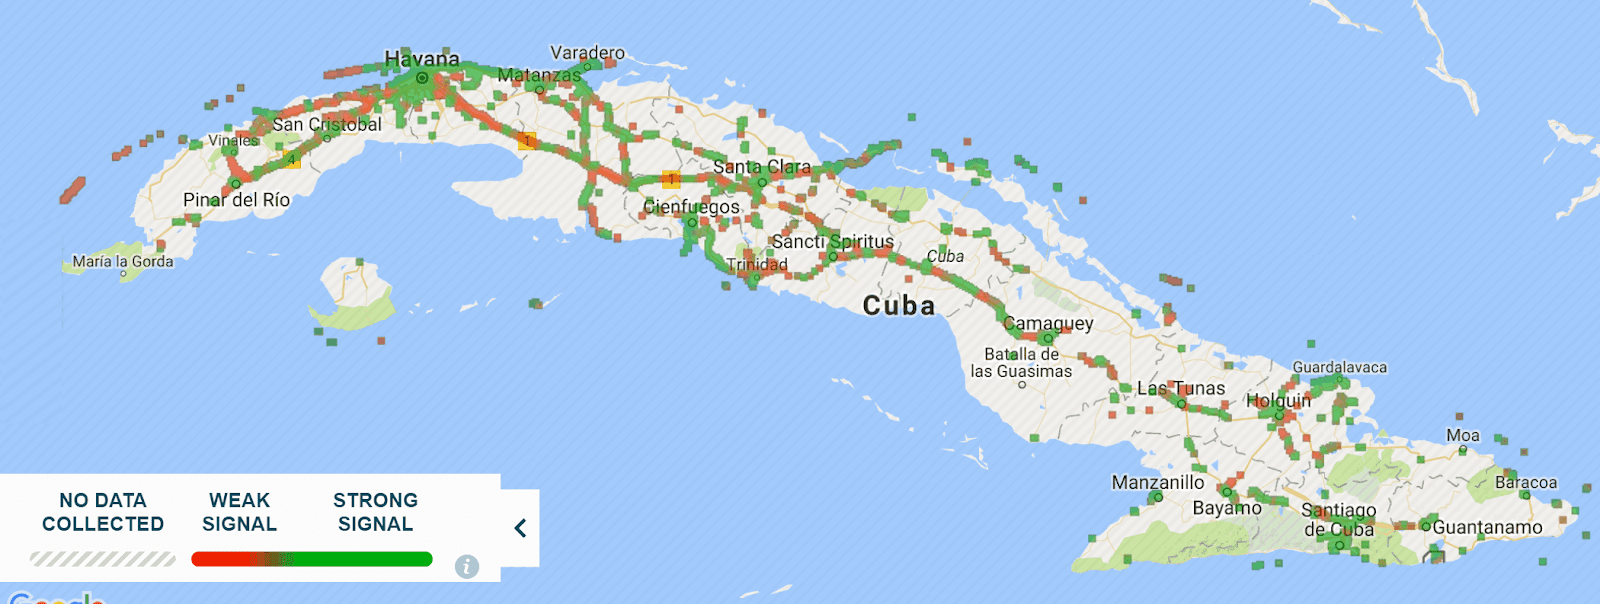 The internet in cuba crowdsourced mobile coverage map november 2017 source gumiabroncs Gallery